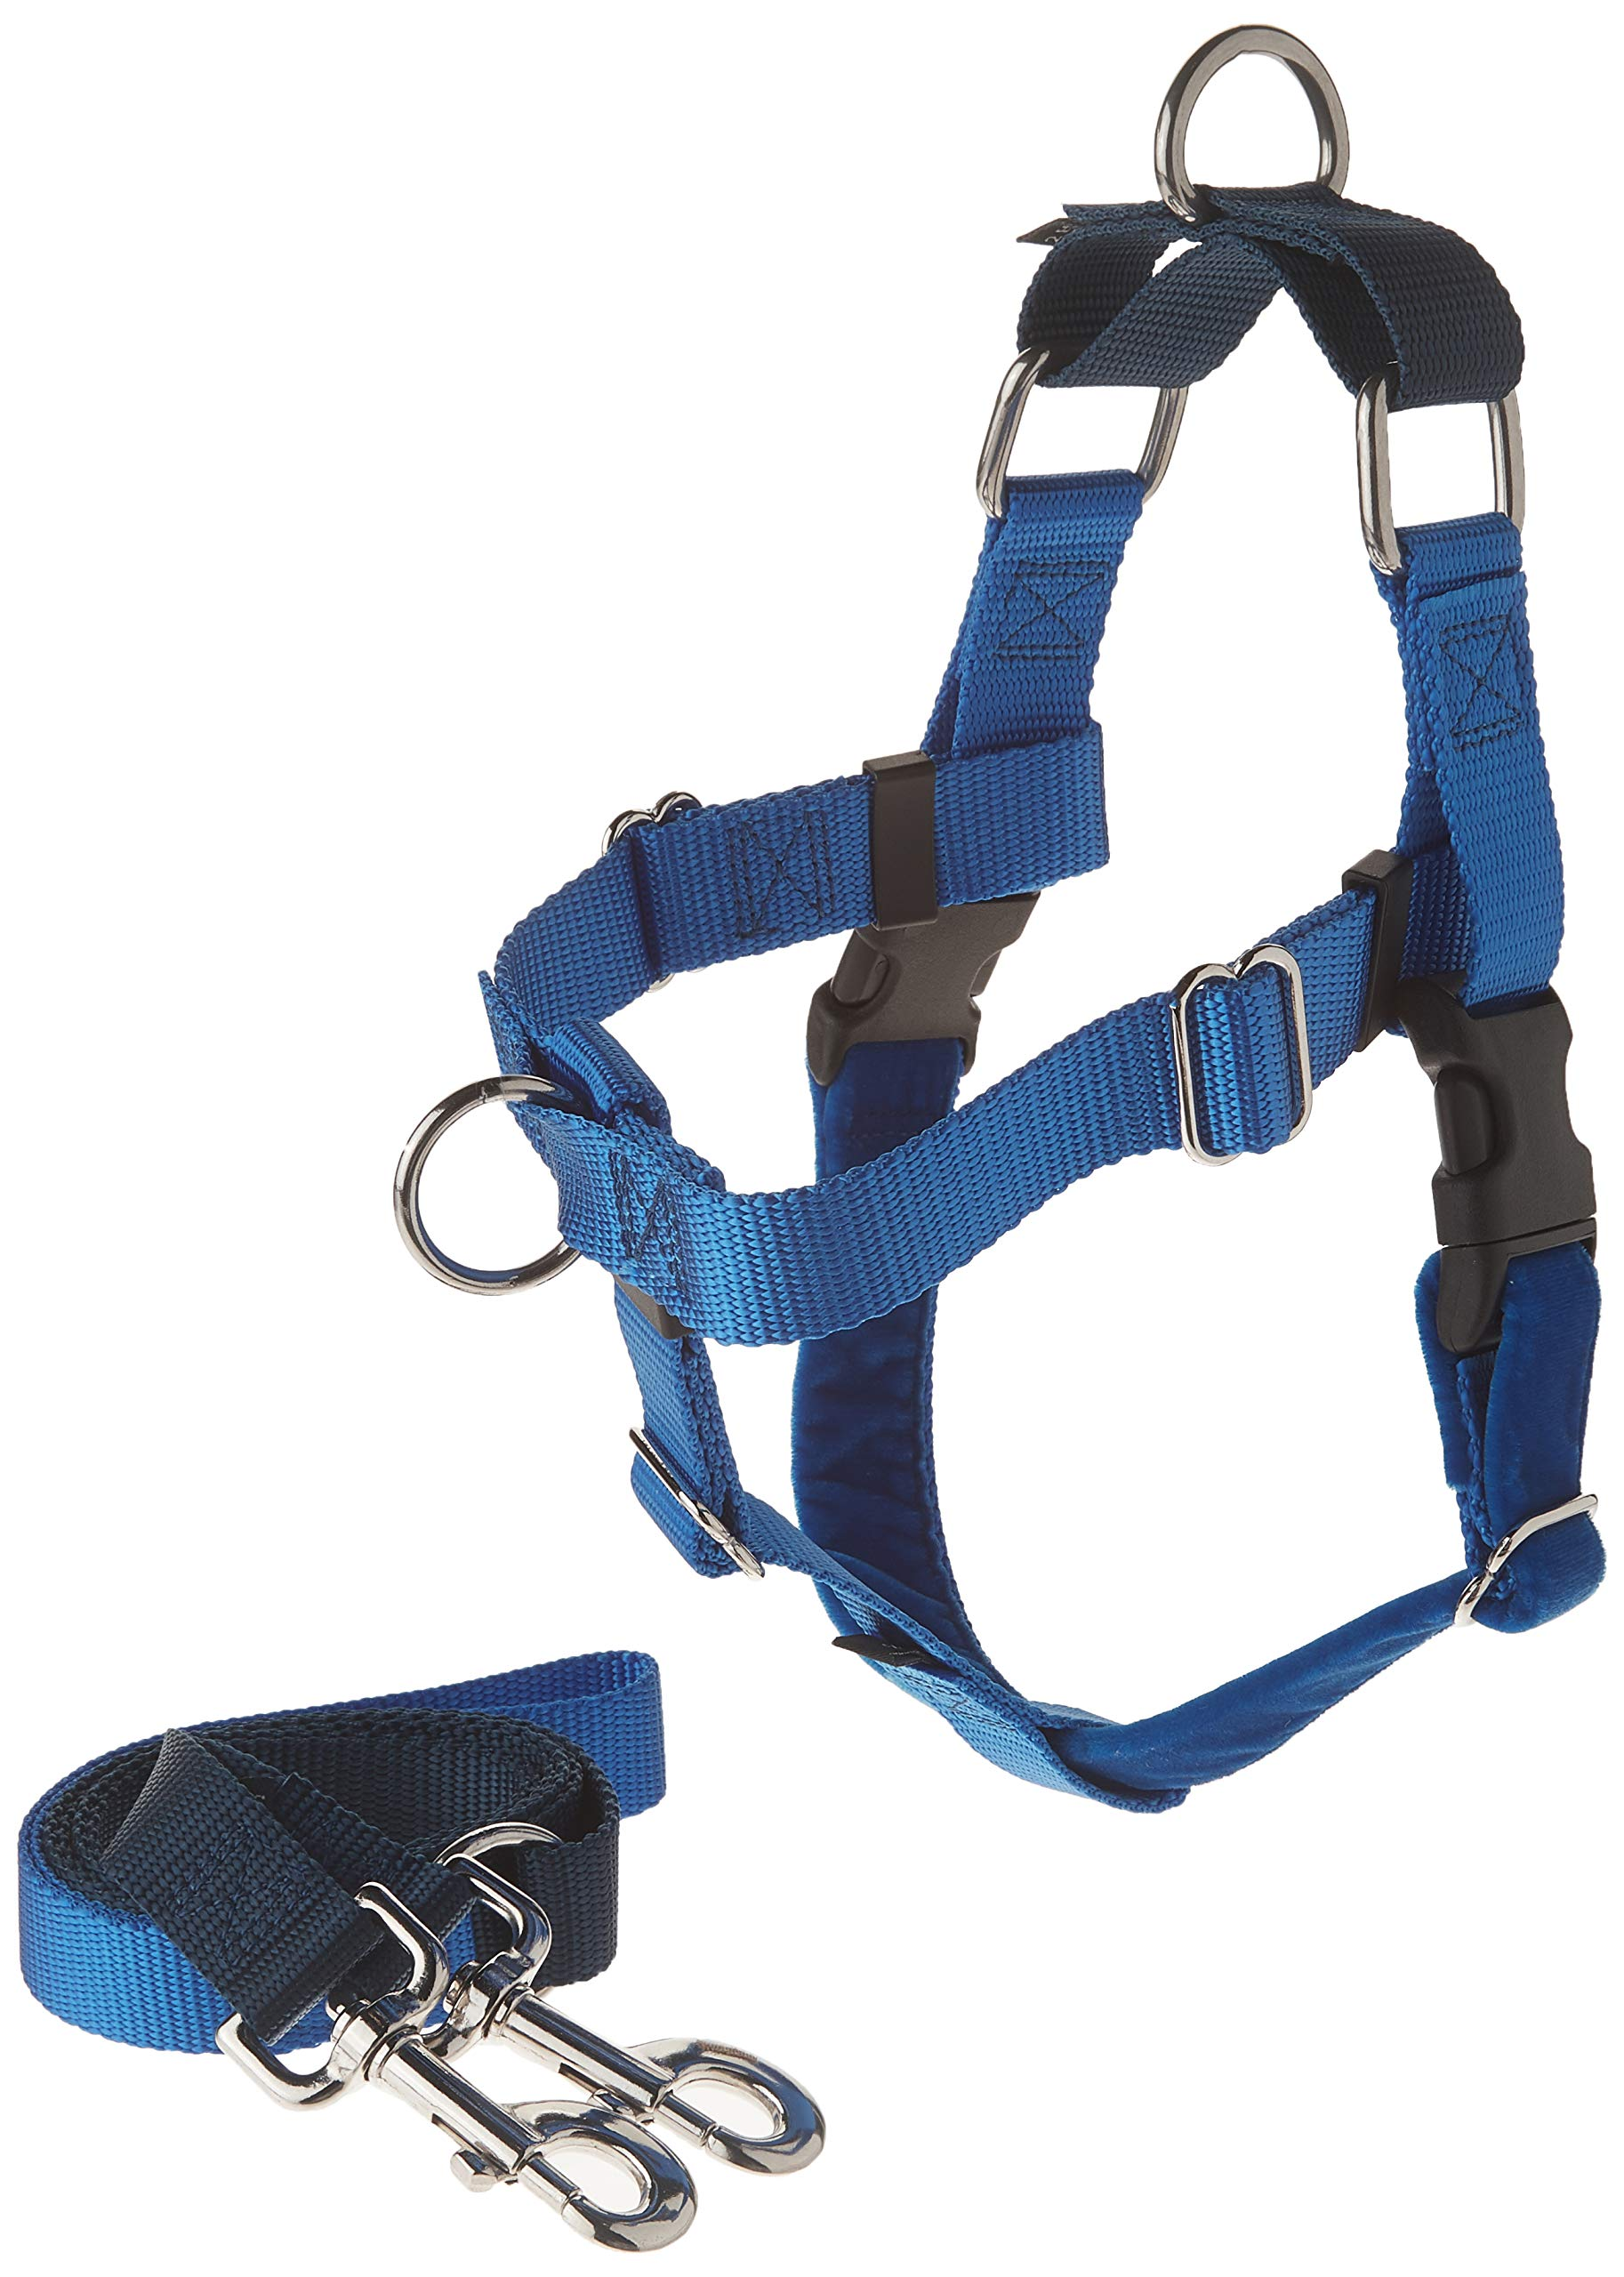 2 Hounds Design Freedom No-Pull Dog Harness and Leash, Adjustable Comfortable Control for Dog Walking, Made in USA (Small 5/8'') (Royal Blue)